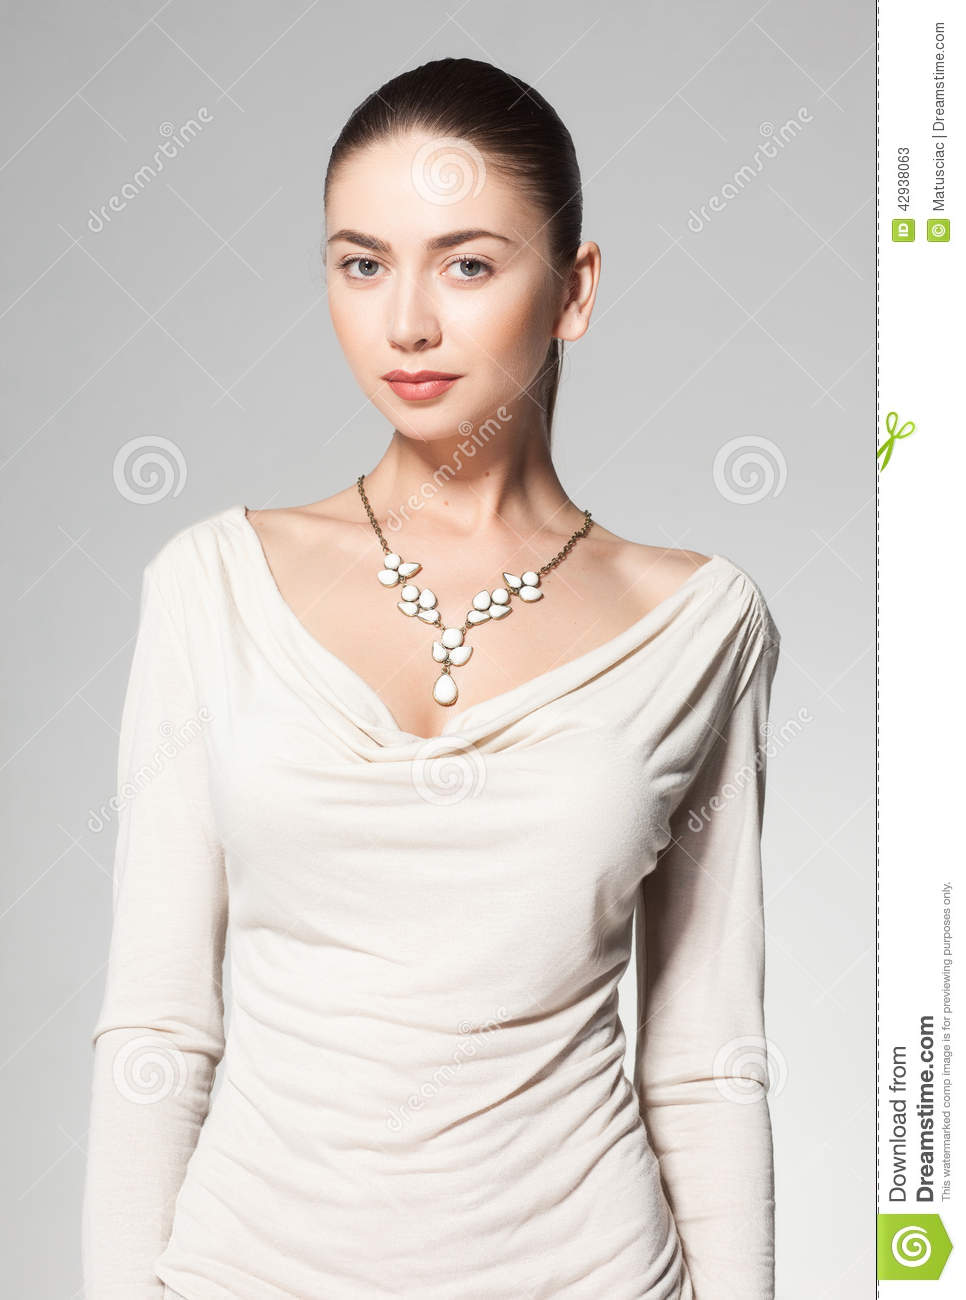 Necklace Beautiful Woman On 89